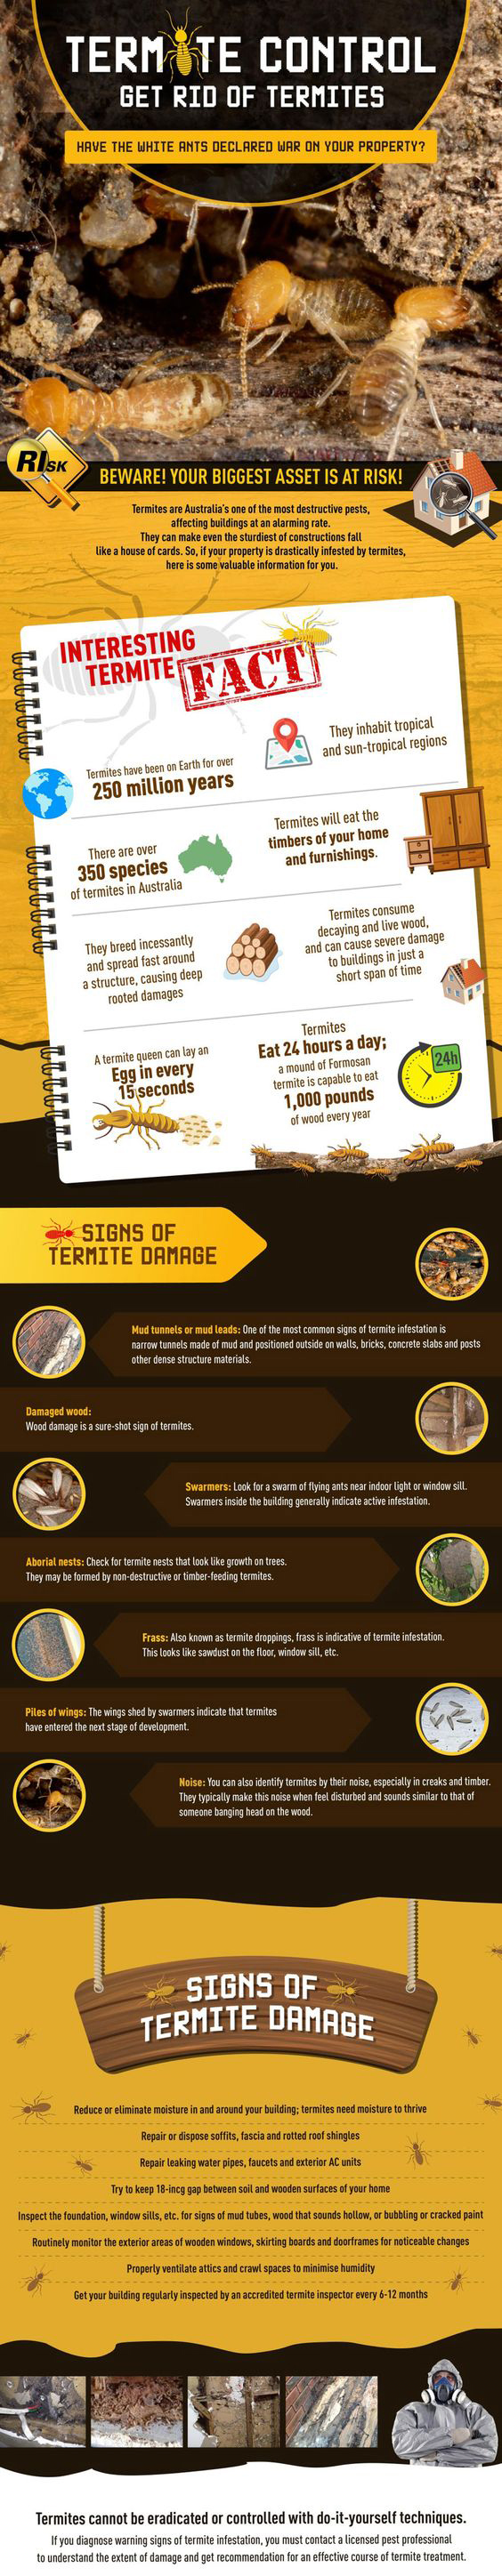 Termite Control How To Get Rid Of Termites Termitecontrol Dubai Termite Control Termites Termite Pest Control